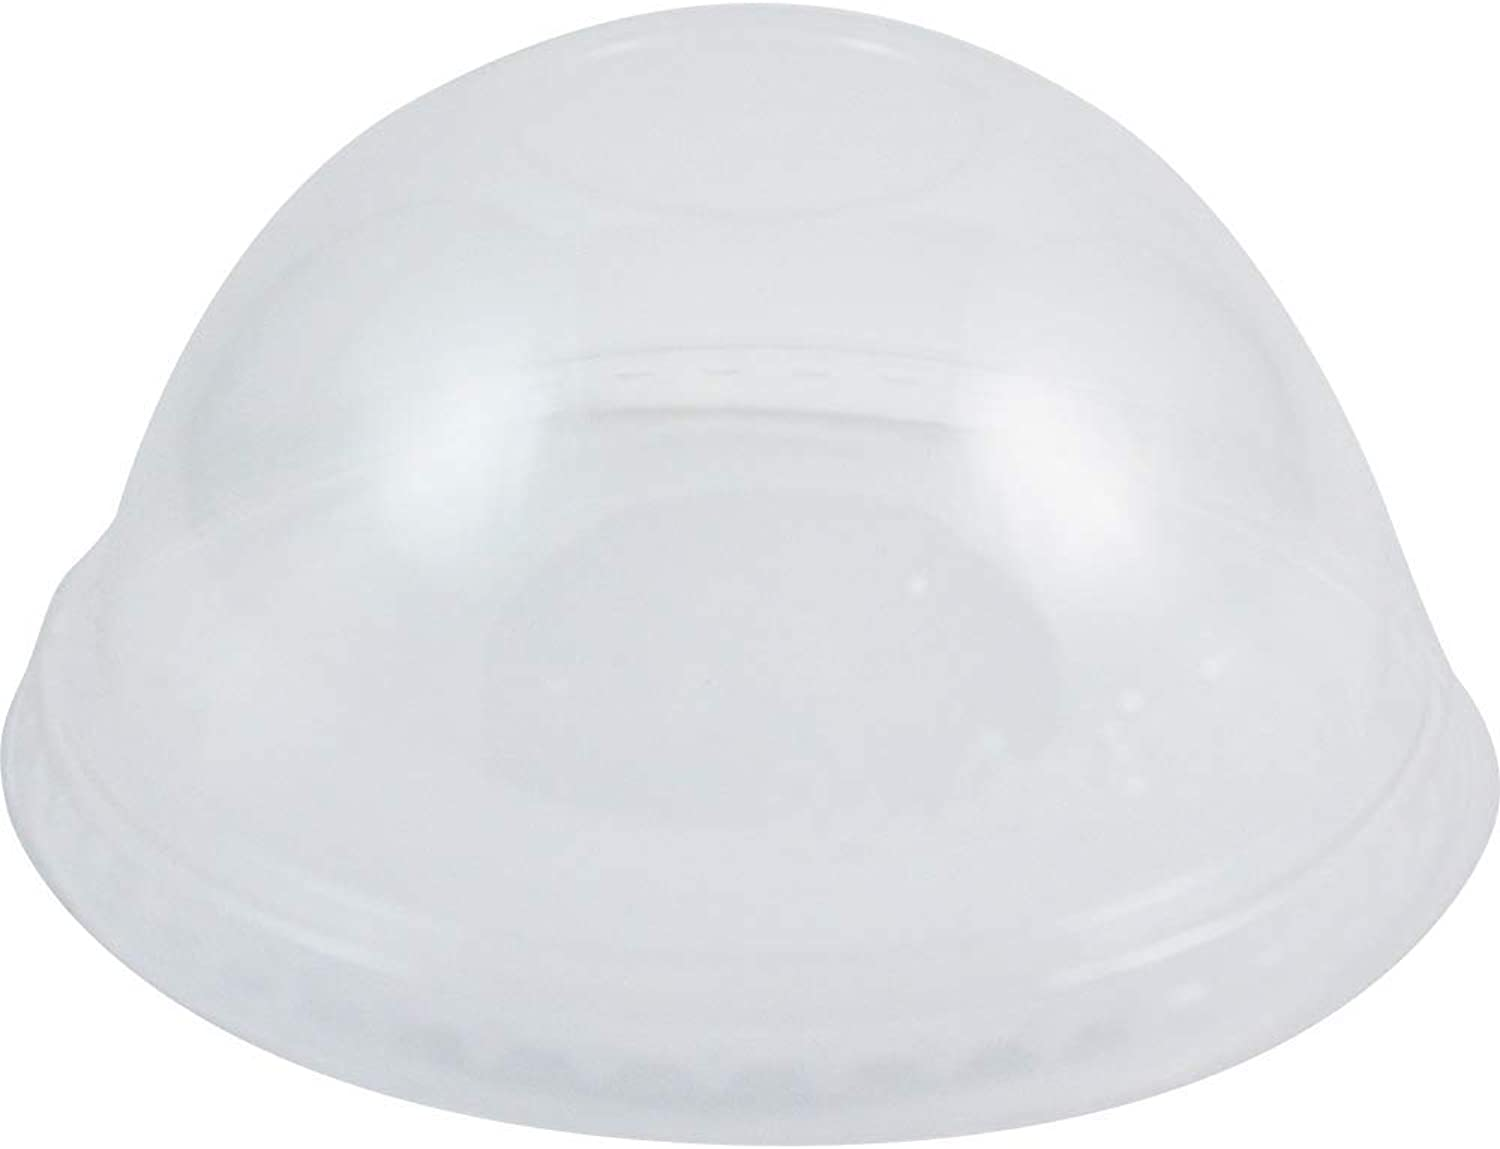 World Centric CPL-CS-12DP 100% Compostable Ingeo Dome Lids, No Straw Hole, for 9Q - 24 oz. Cups, Clear (Pack of 1000)